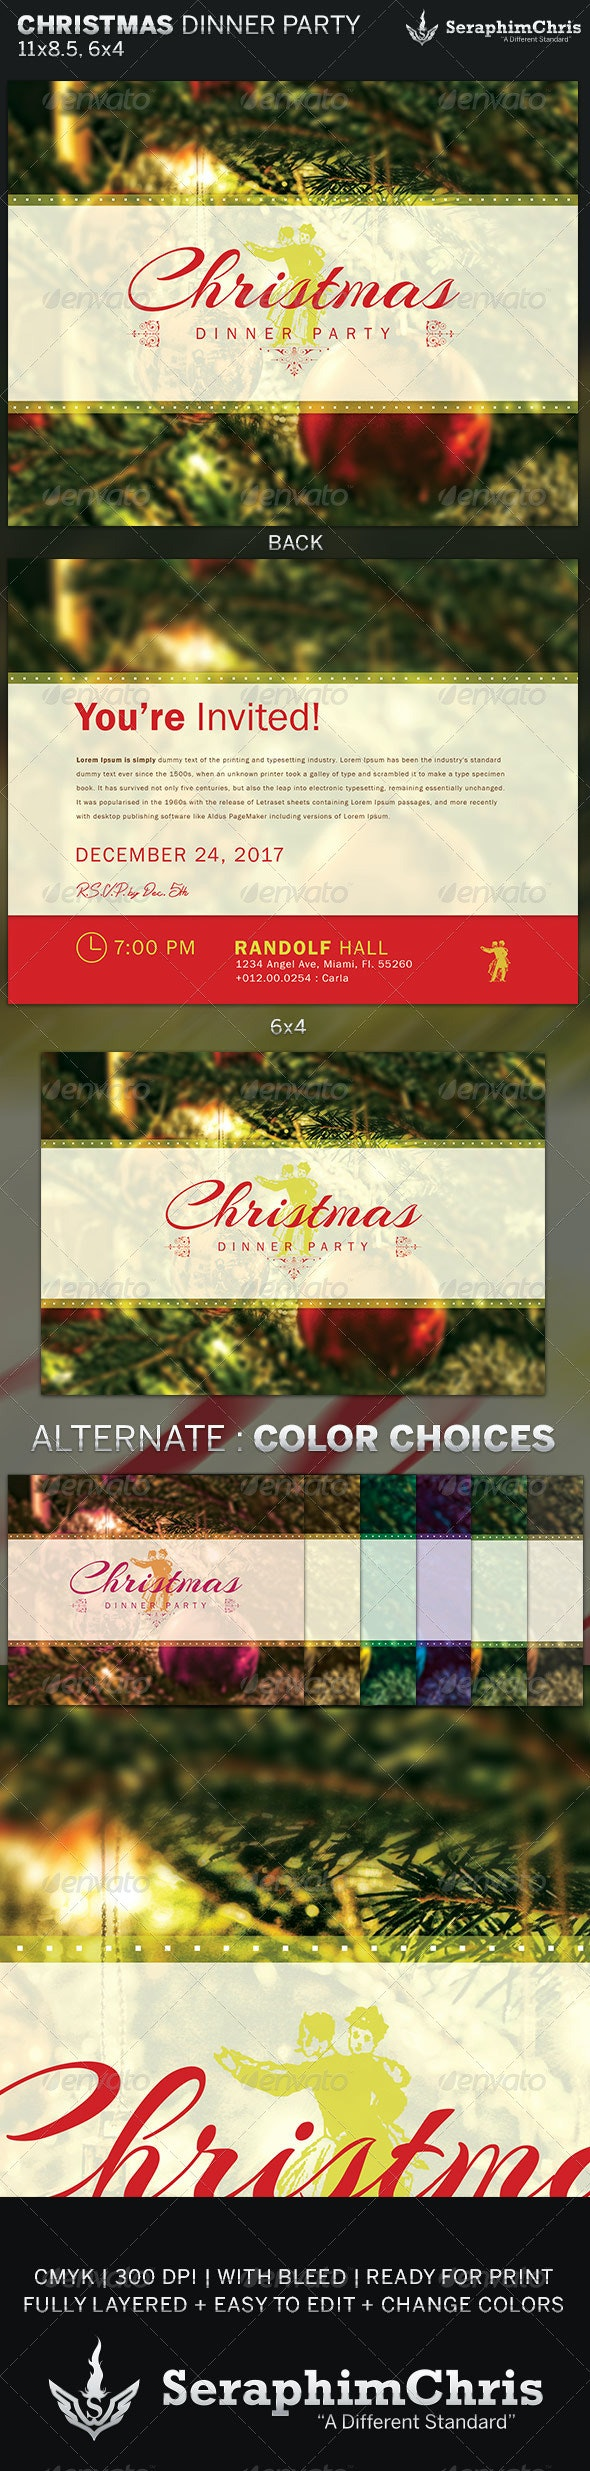 Christmas Dinner Party Flyer Invite Template - Invitations Cards & Invites